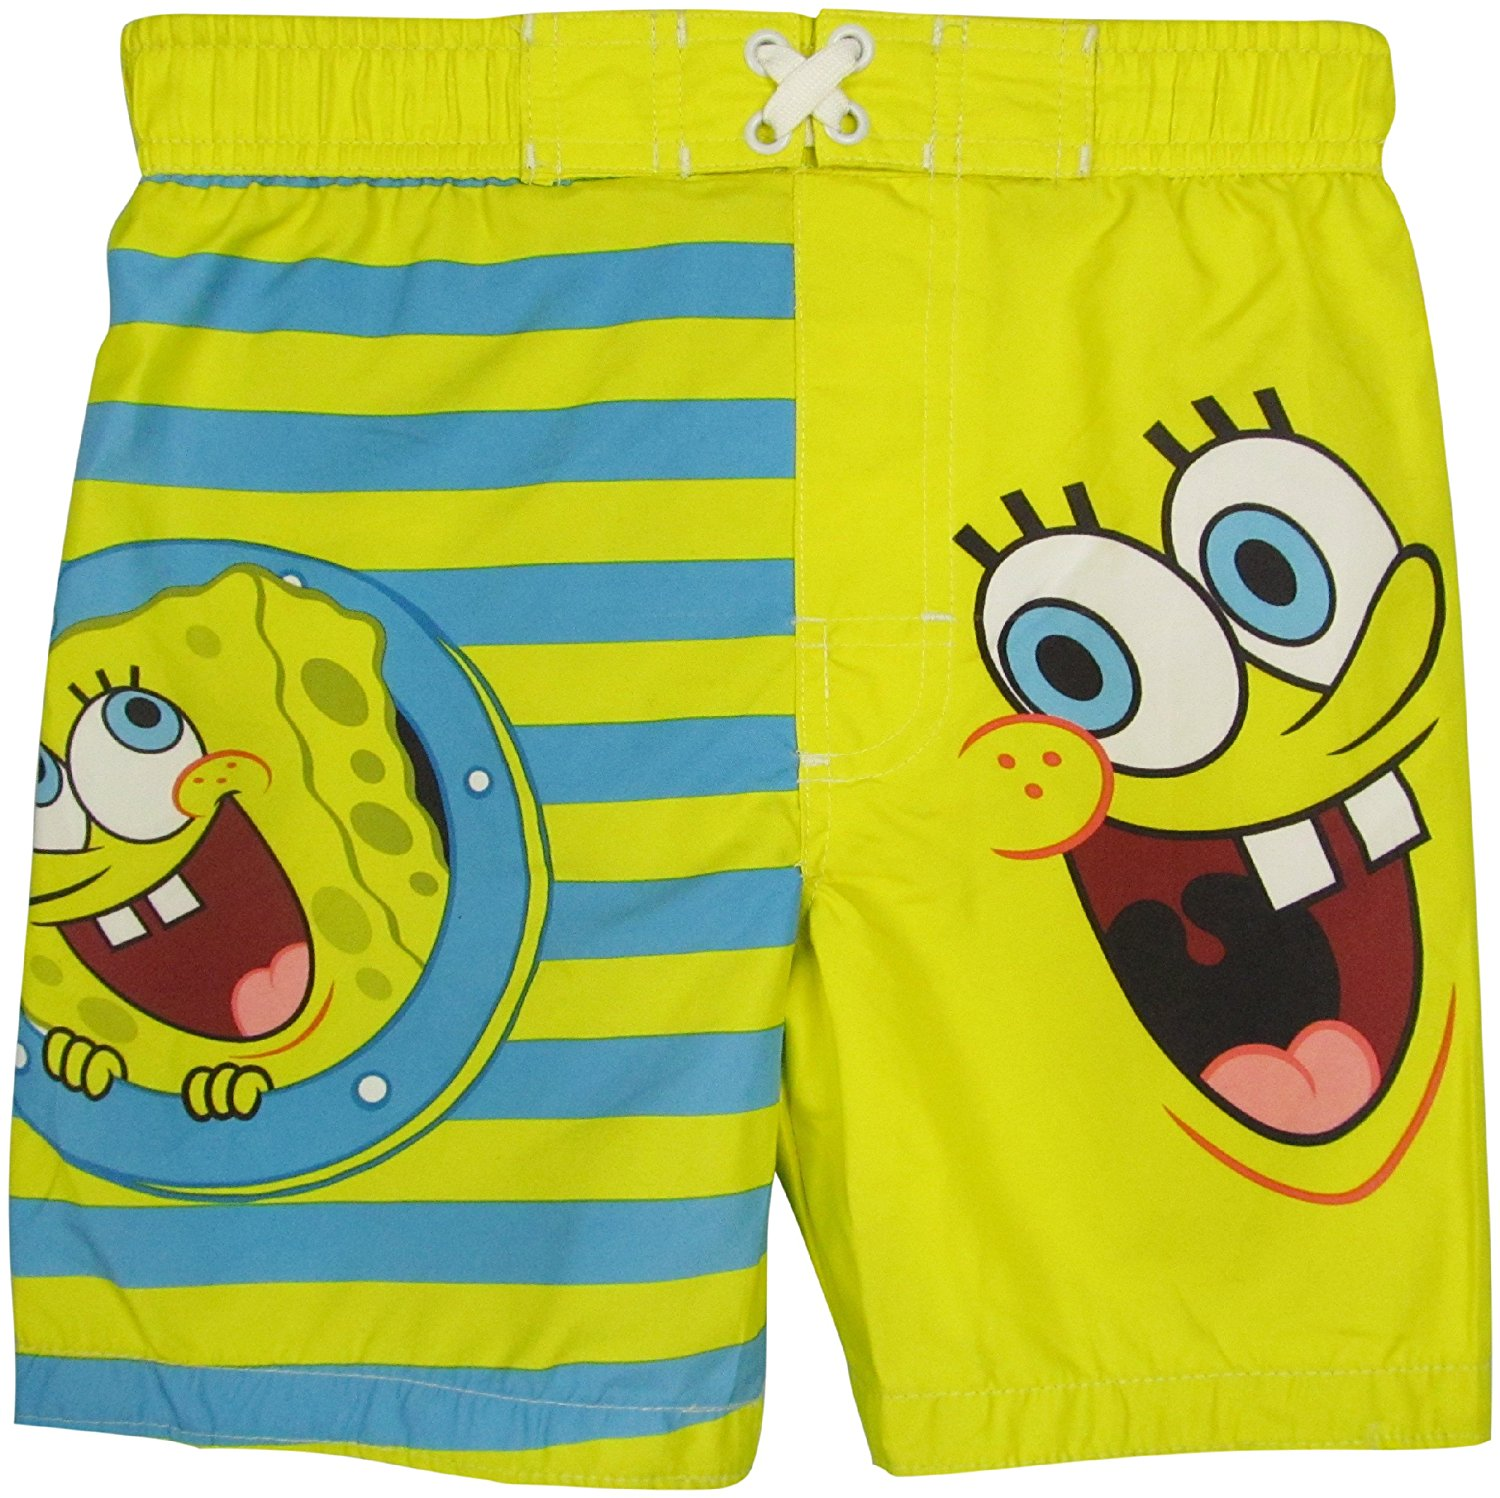 999a5a287692a Cheap Spongebob Shorts Men, find Spongebob Shorts Men deals on line ...